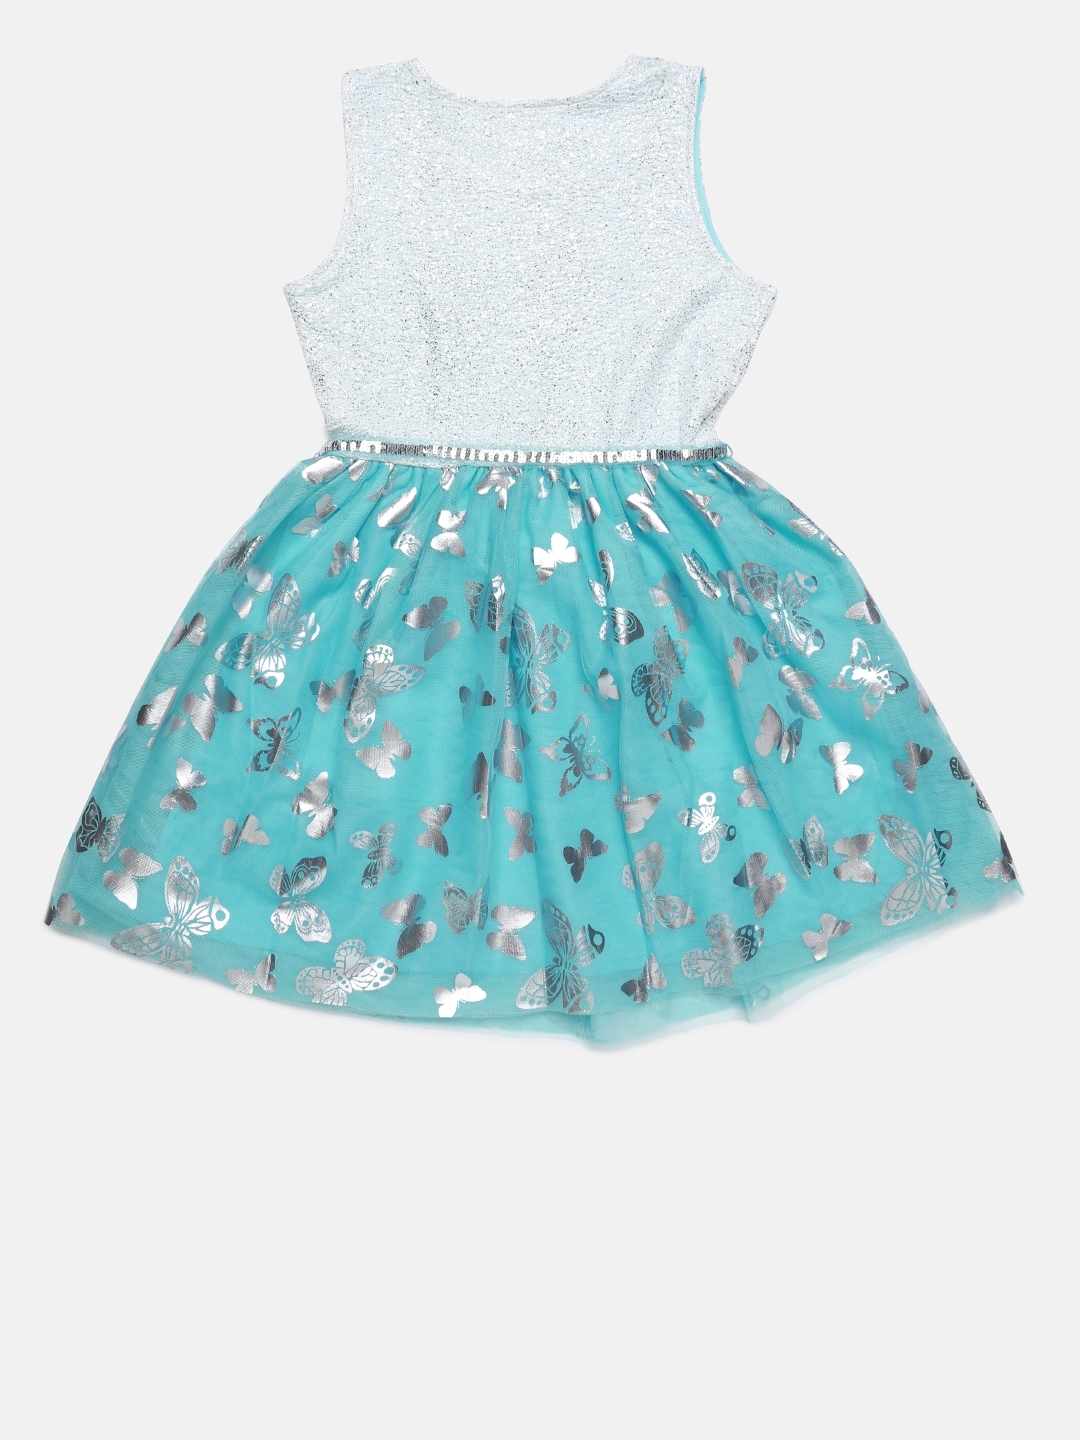 7338e675 Buy The Childrens Place Girls Blue Printed Fit And Flare Dress ...